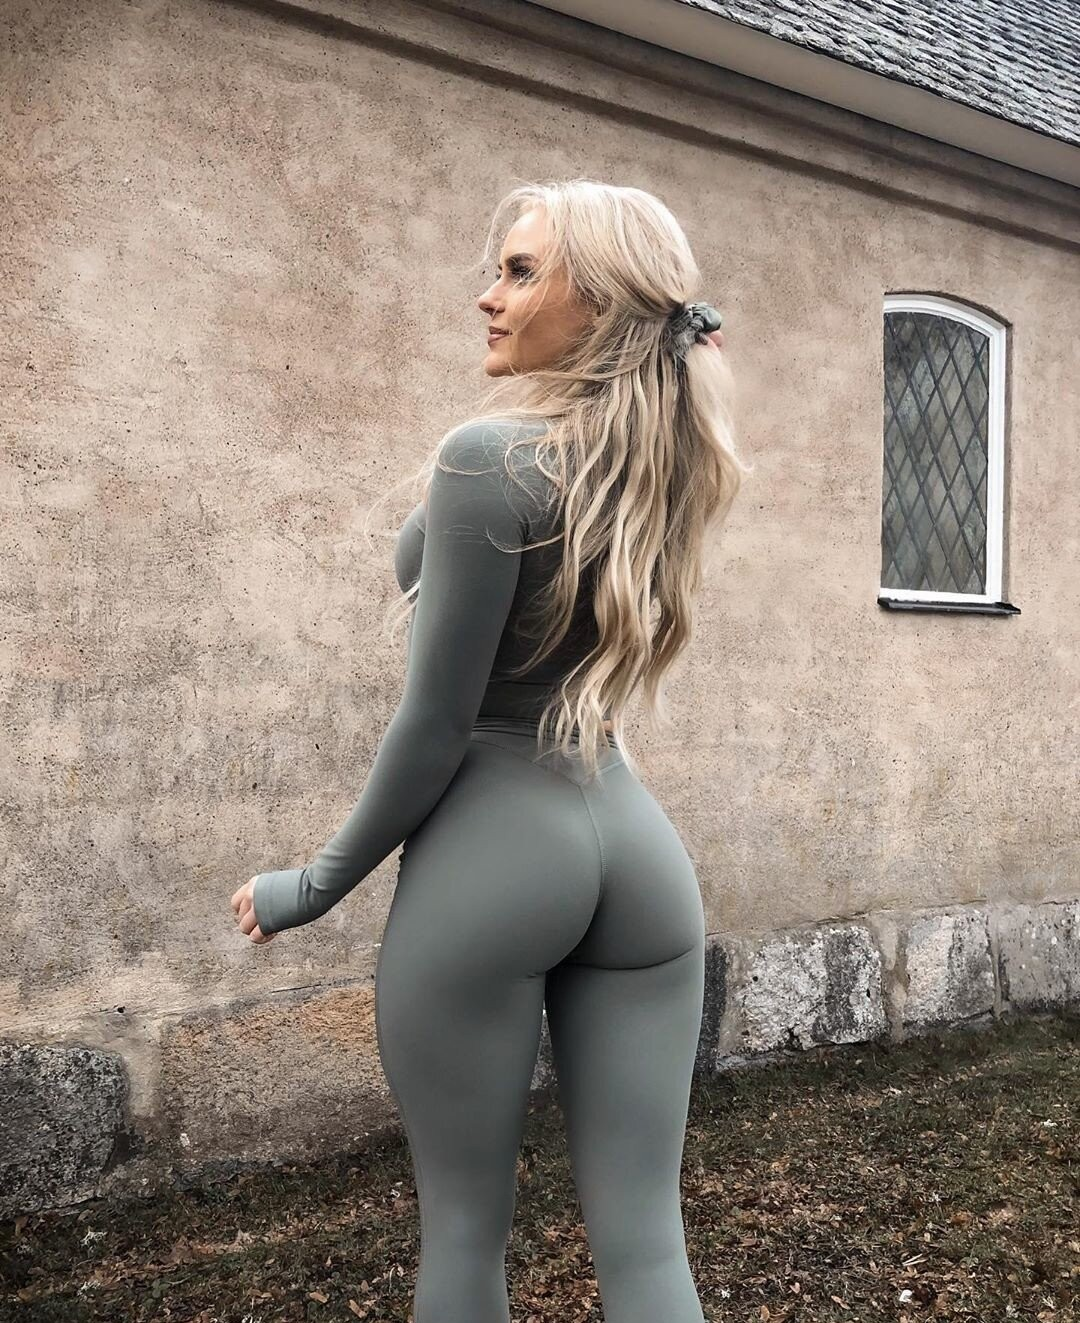 Anna nystrom in taut stretched pants, workout clothes